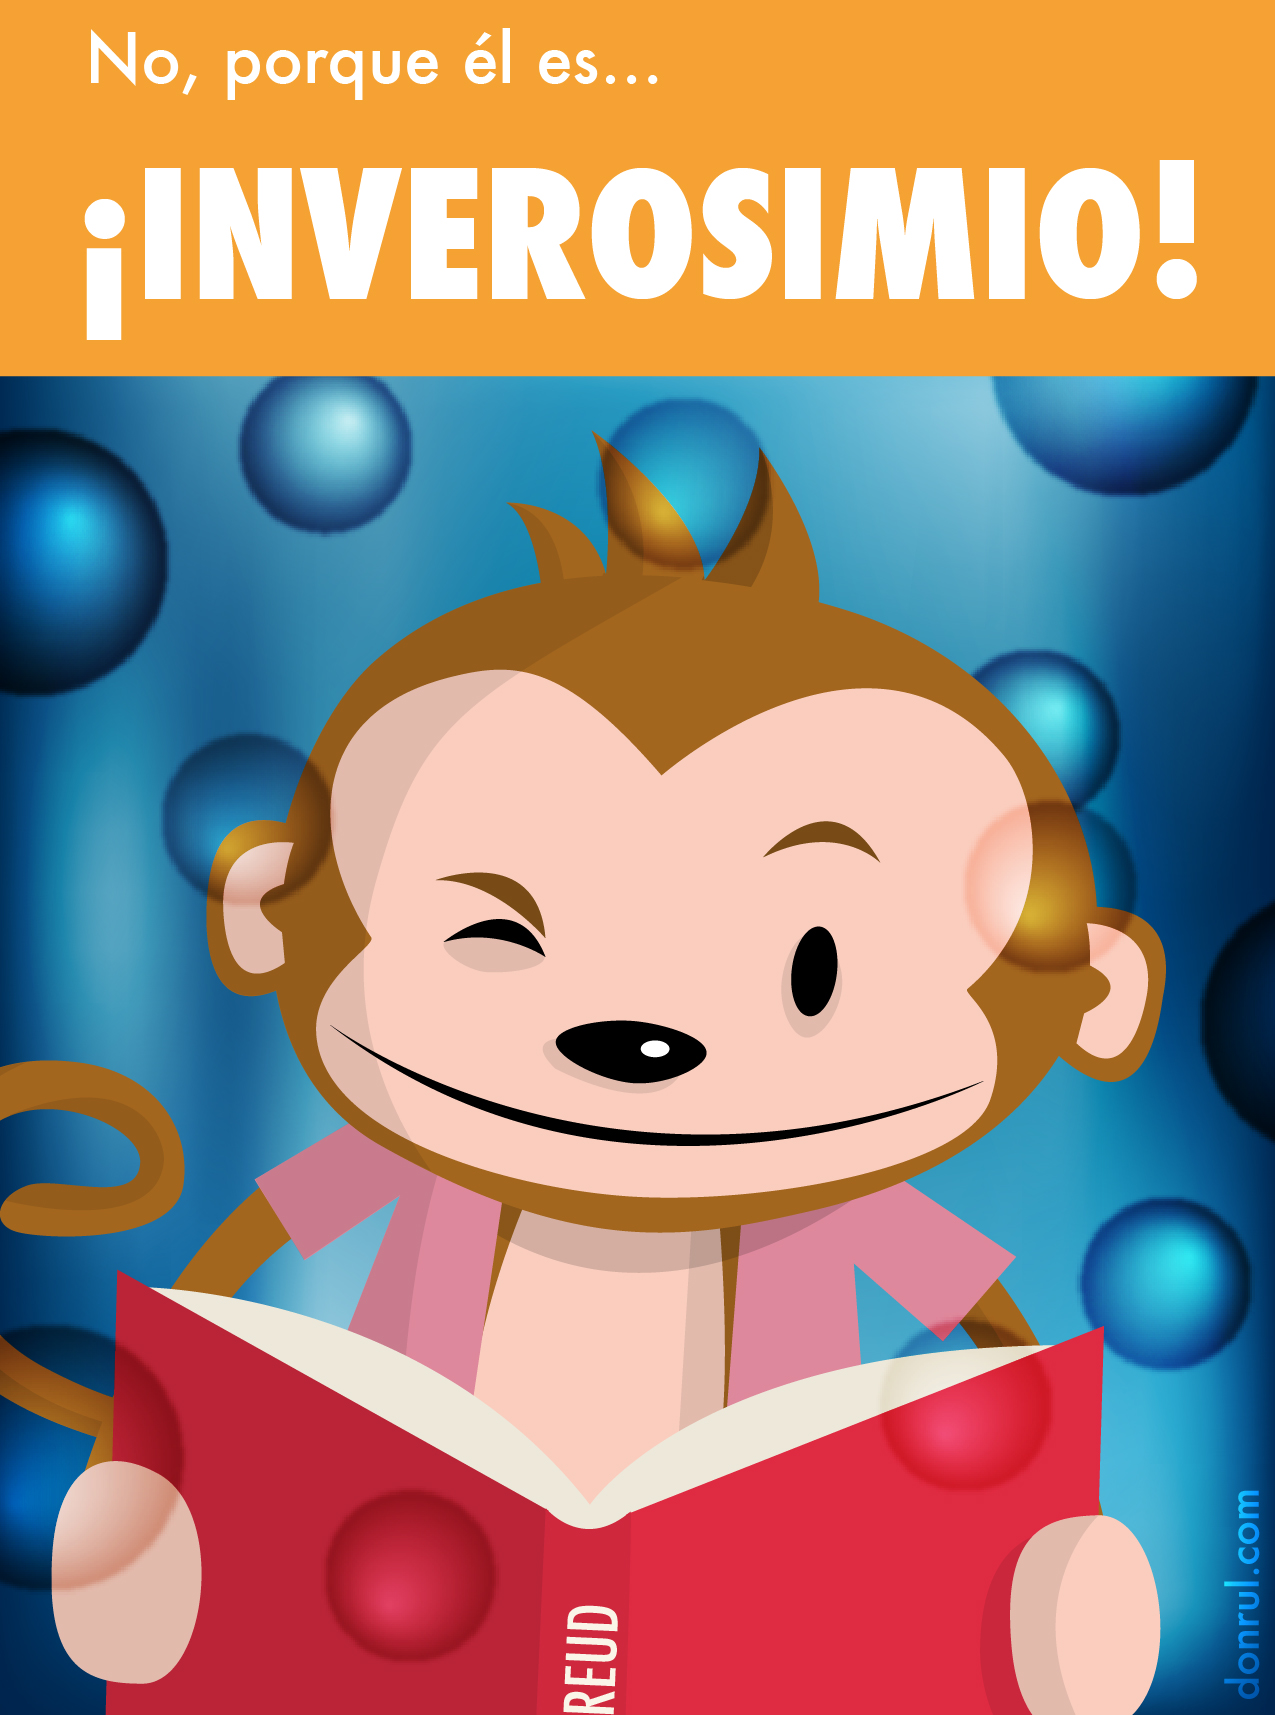 Inverosimio-02